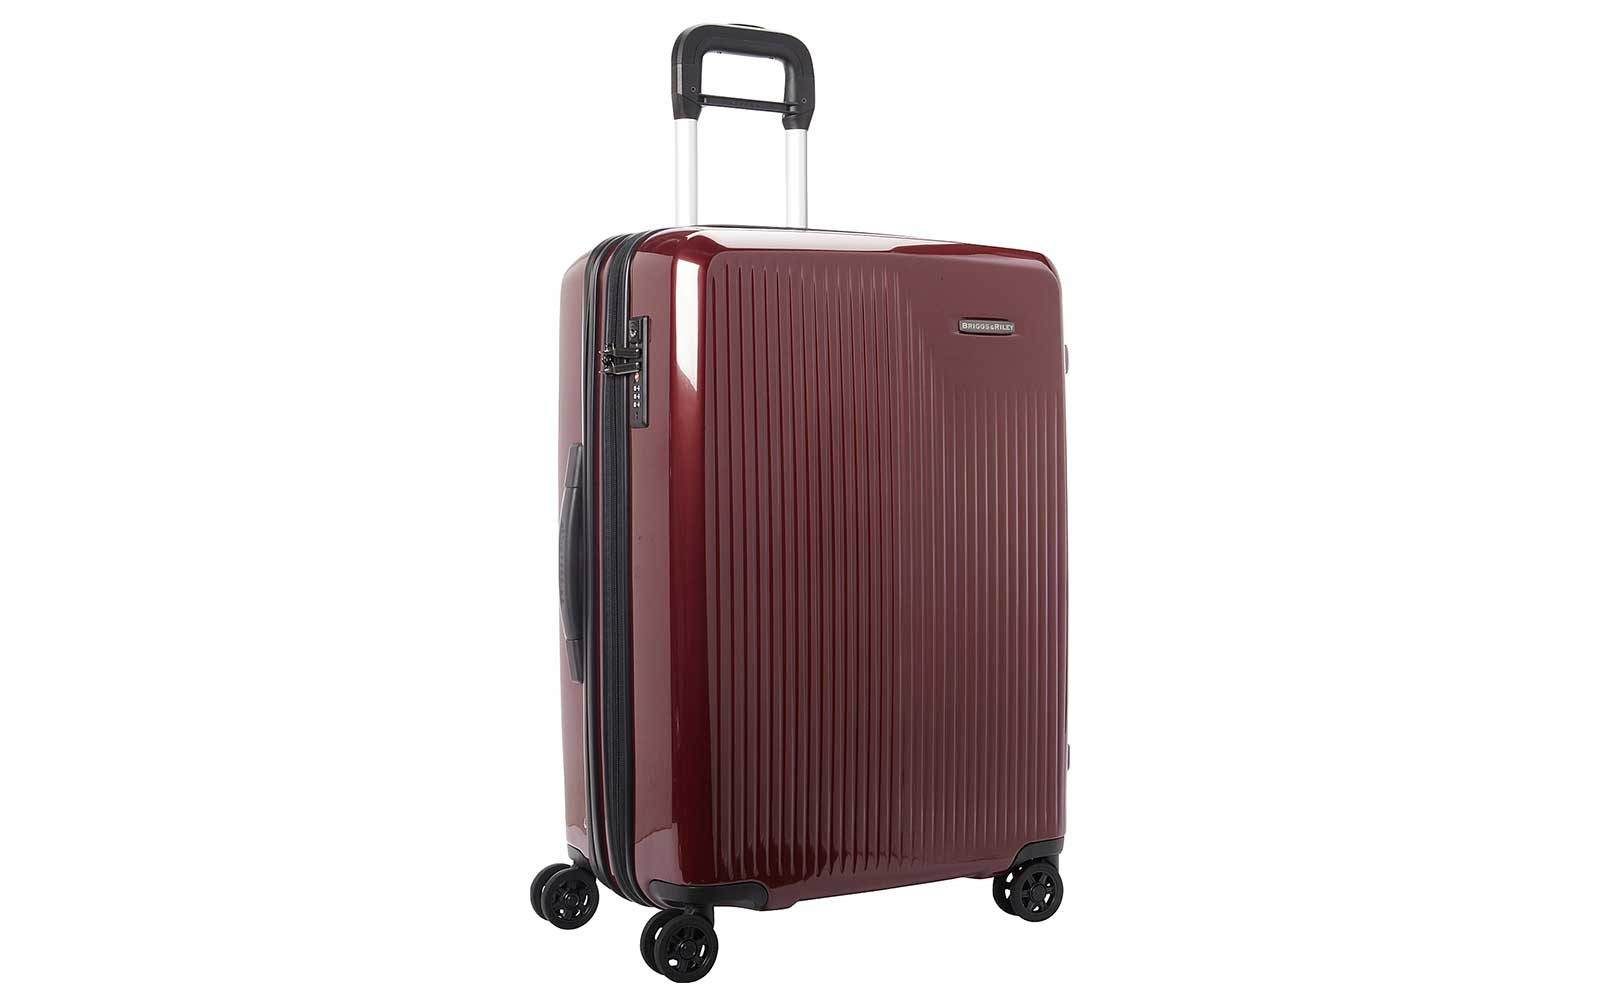 Briggs & Riley Sympatico CX Medium Expandable Hardside Spinner